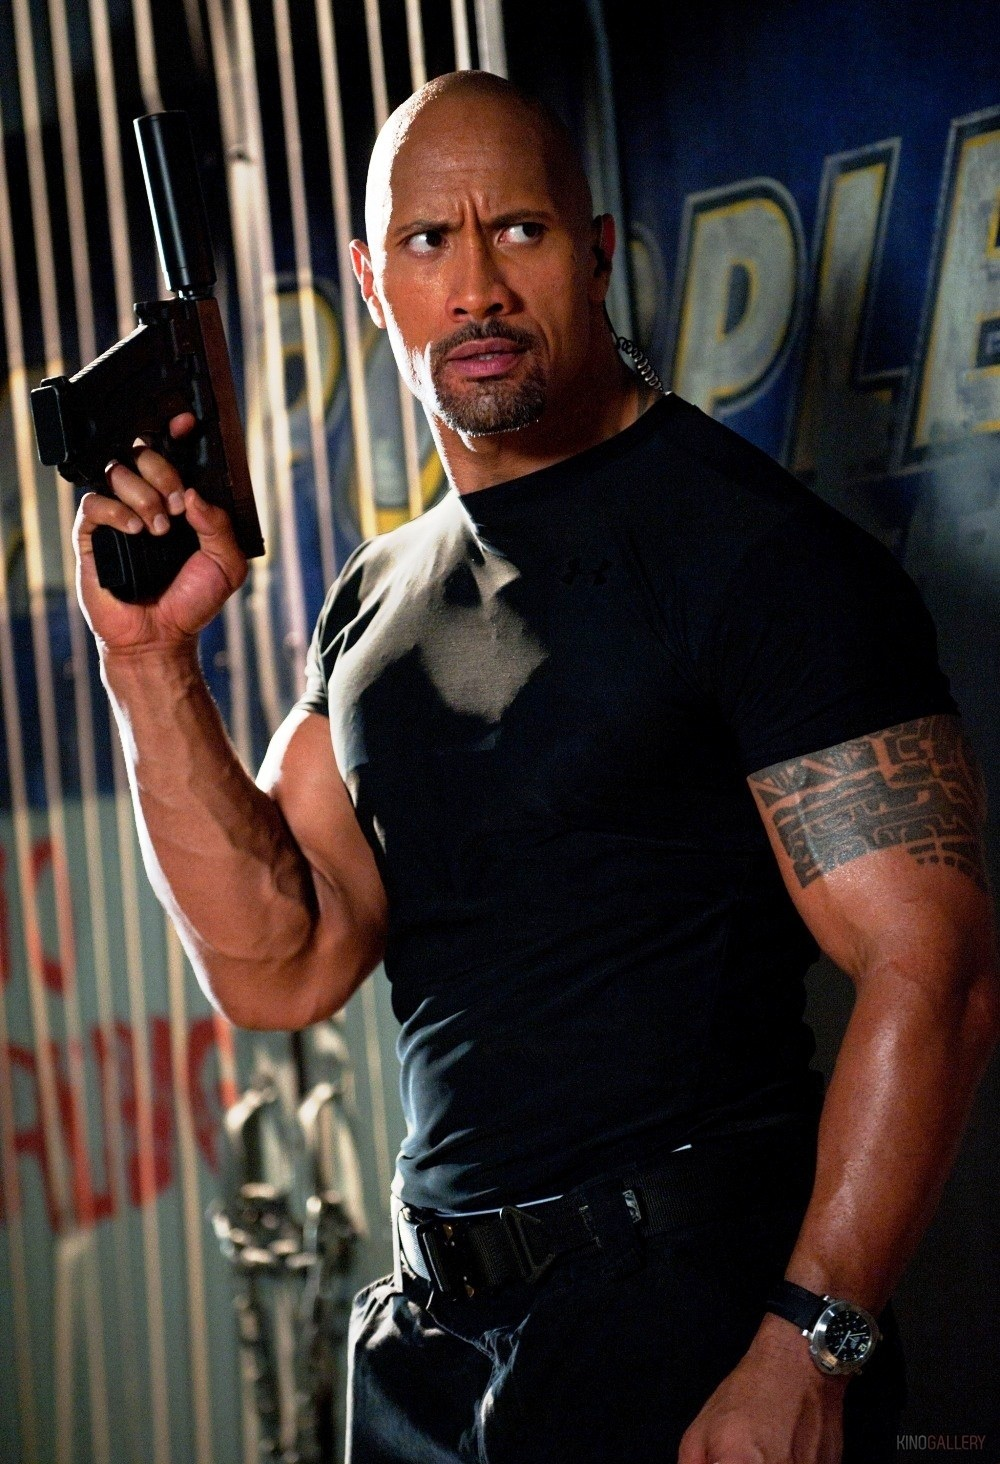 G.I. Joe 3 Looks Set To Be Delayed By Dwayne Johnson's Career | Dwayne Johnson